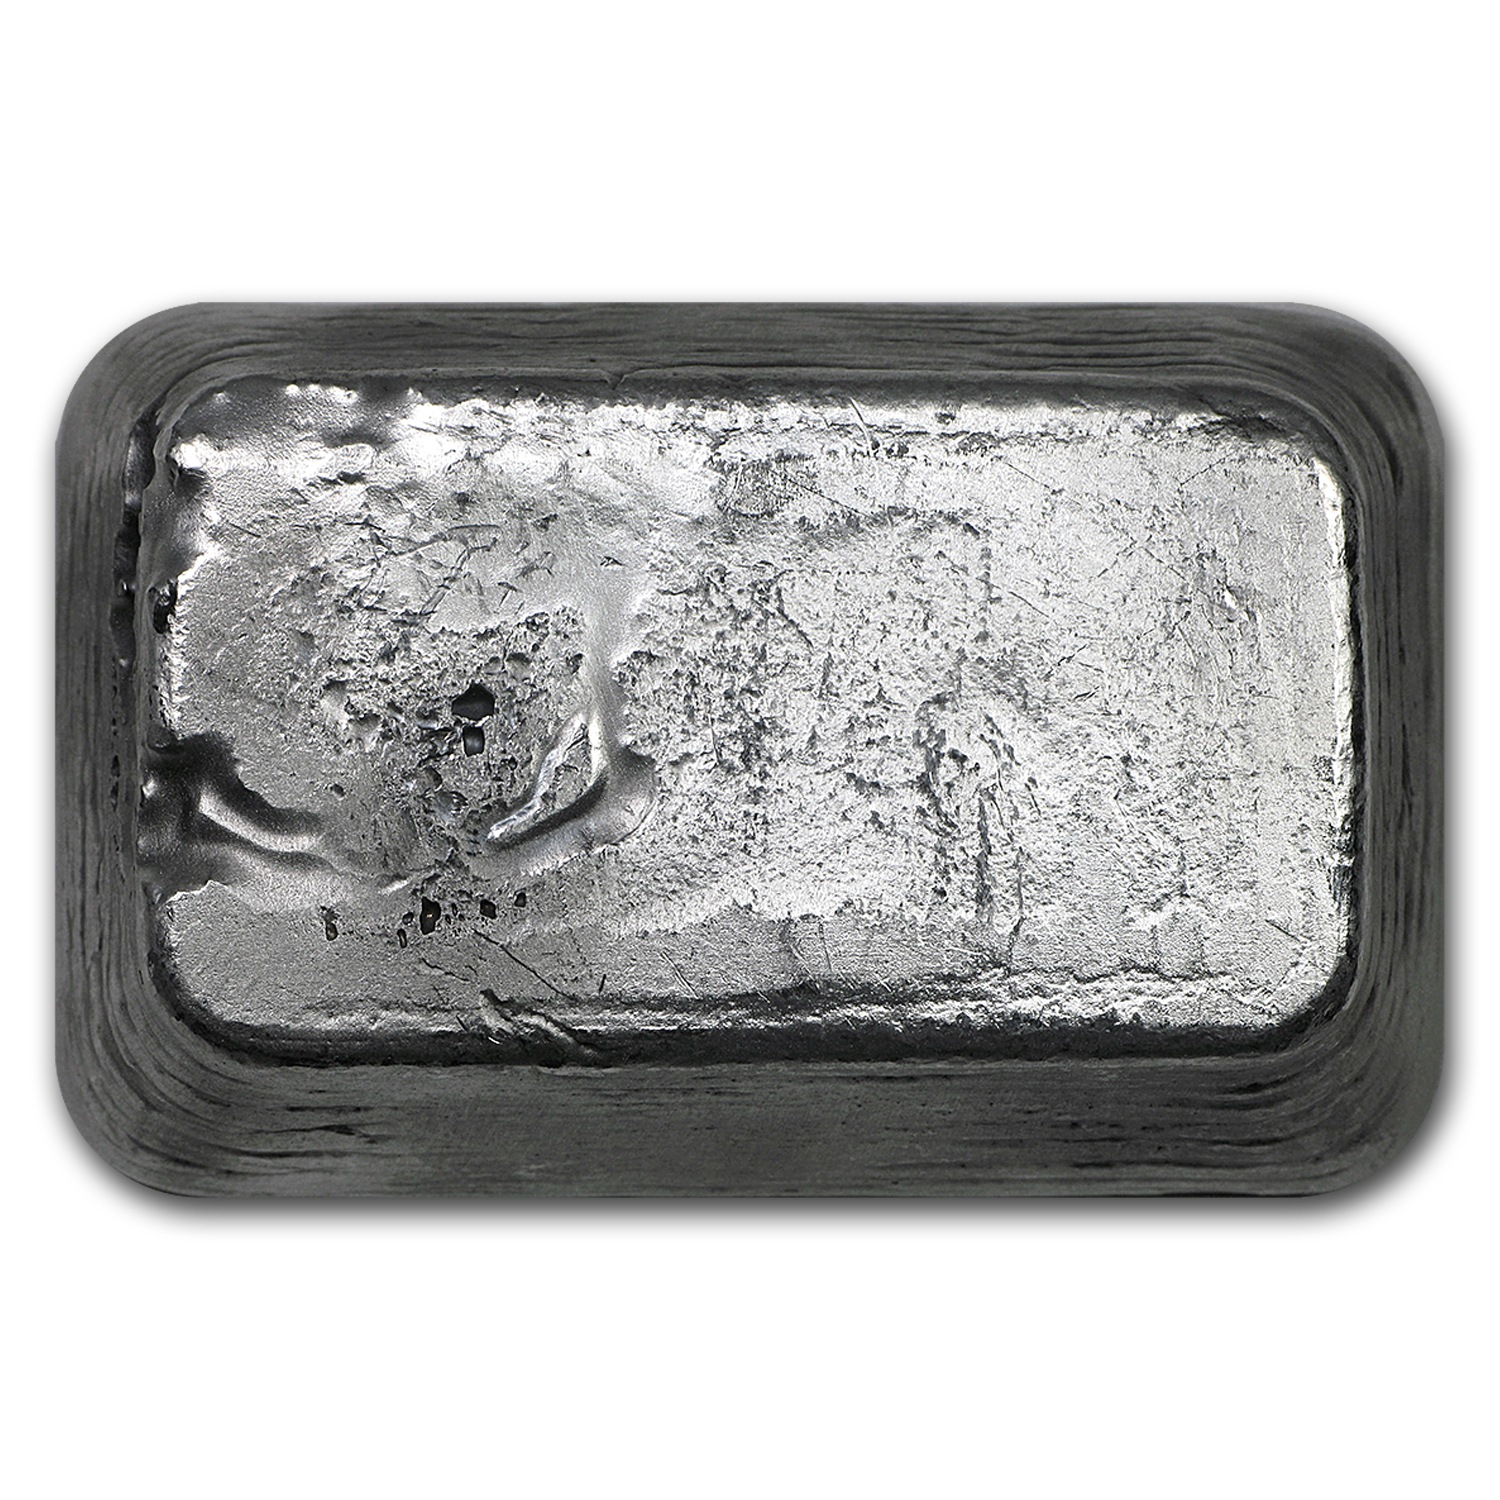 10 oz Silver Bars - Bison Bullion